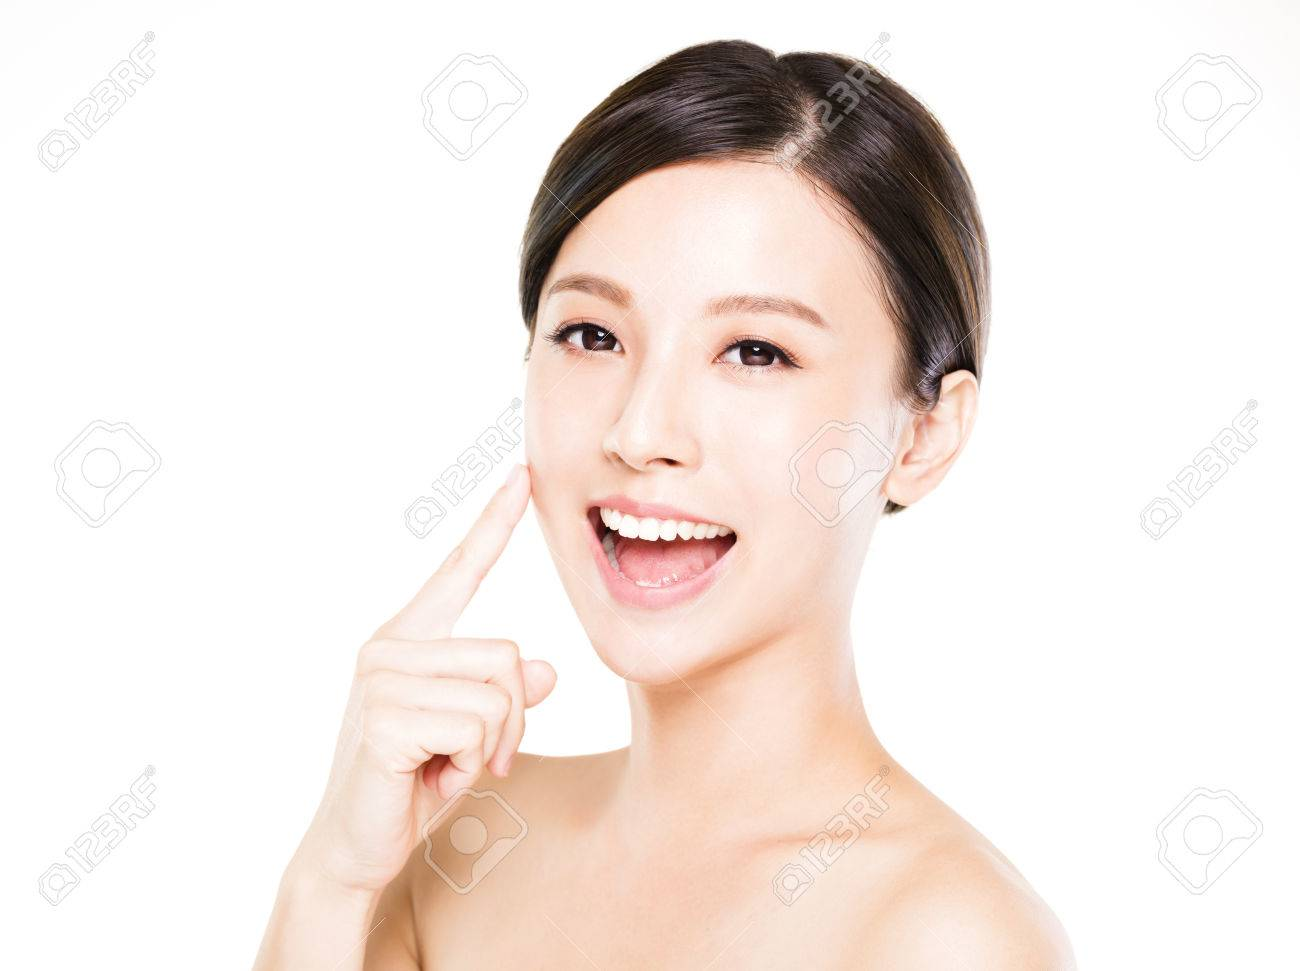 closeup young woman face with clean skin - 63240506